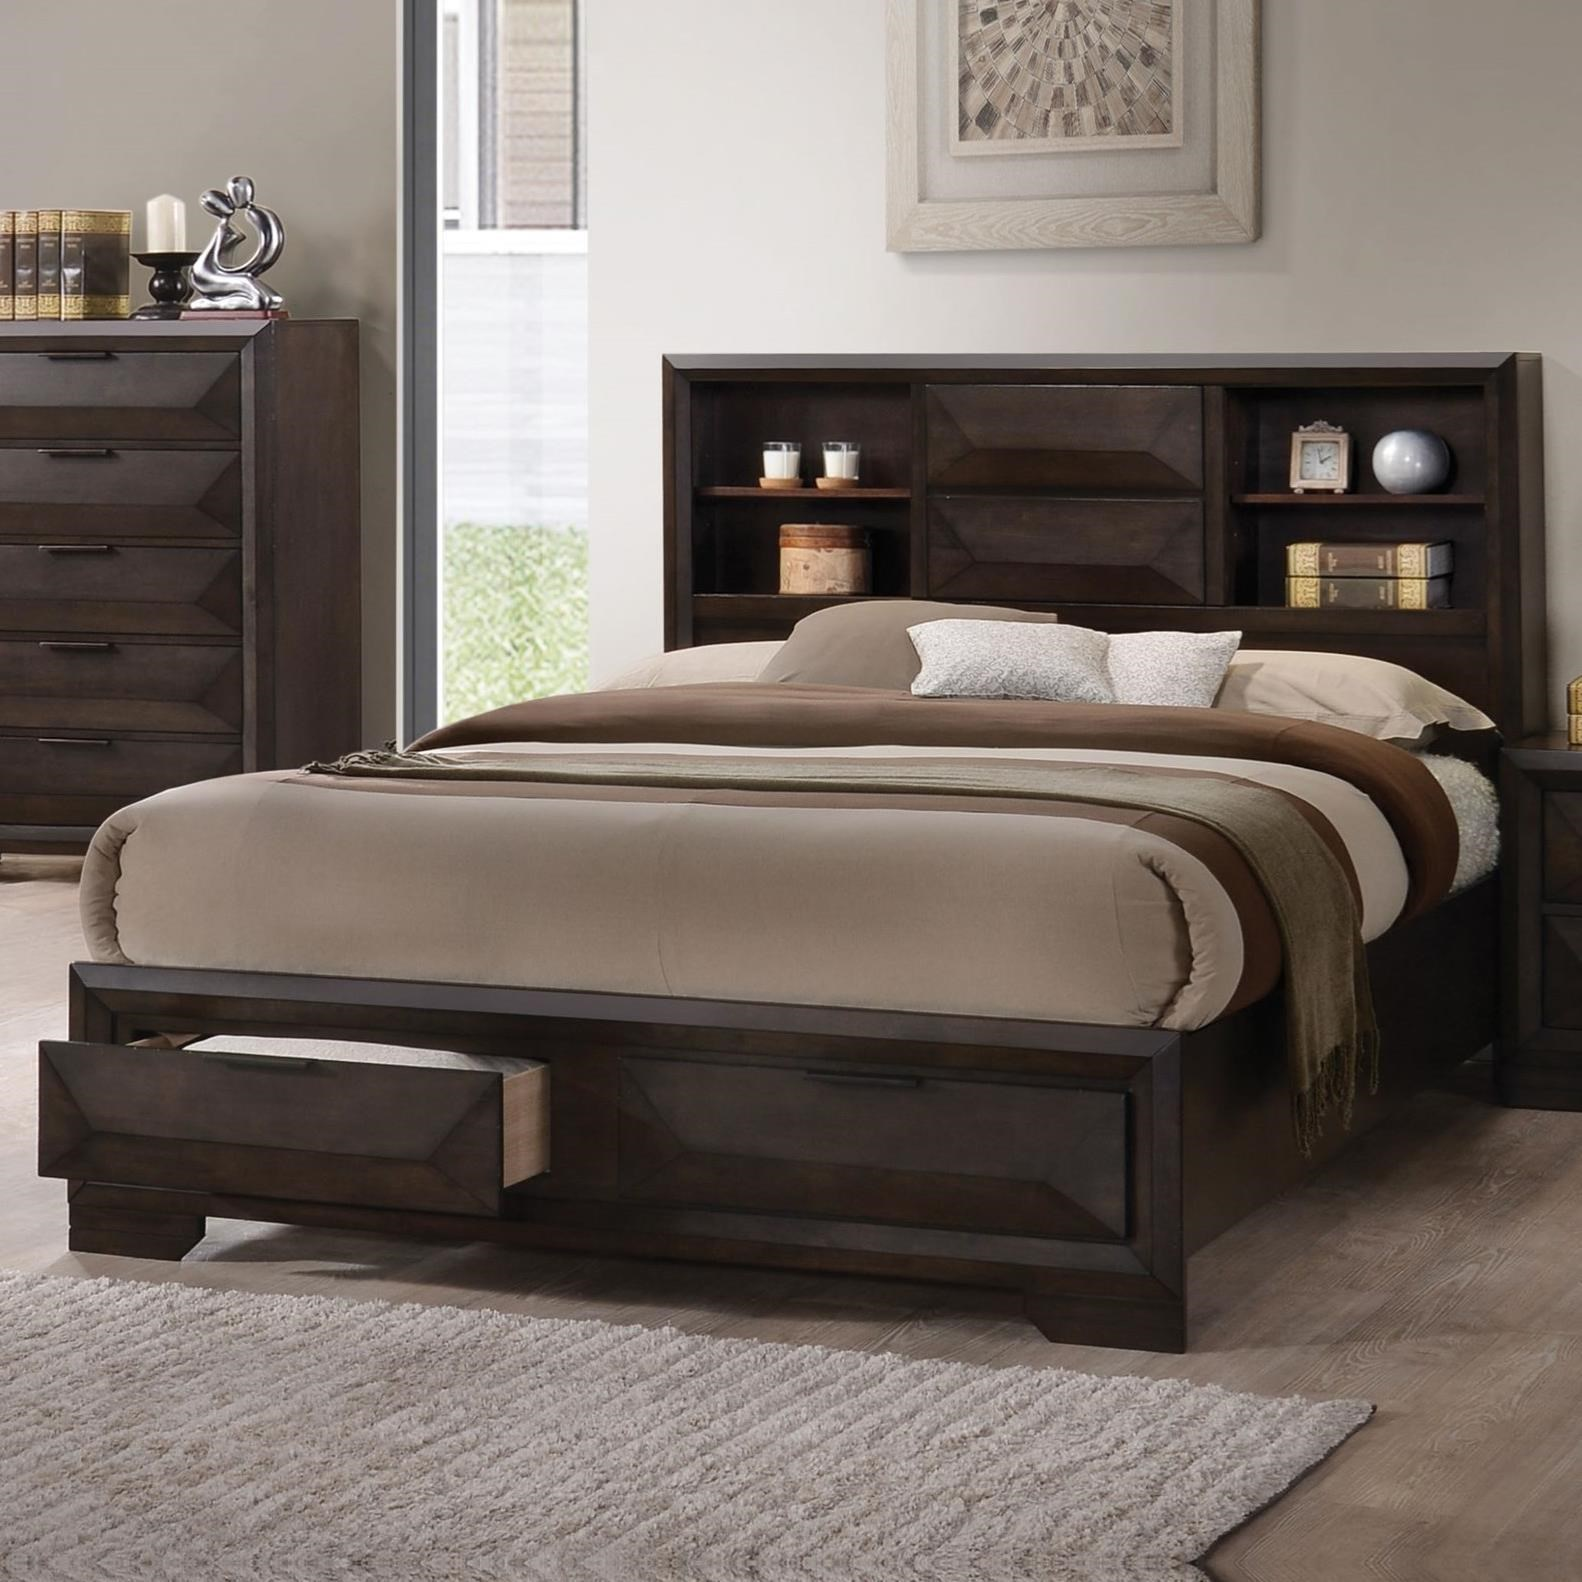 Merveille Eastern King Bookcase Bed  by Acme Furniture at Del Sol Furniture